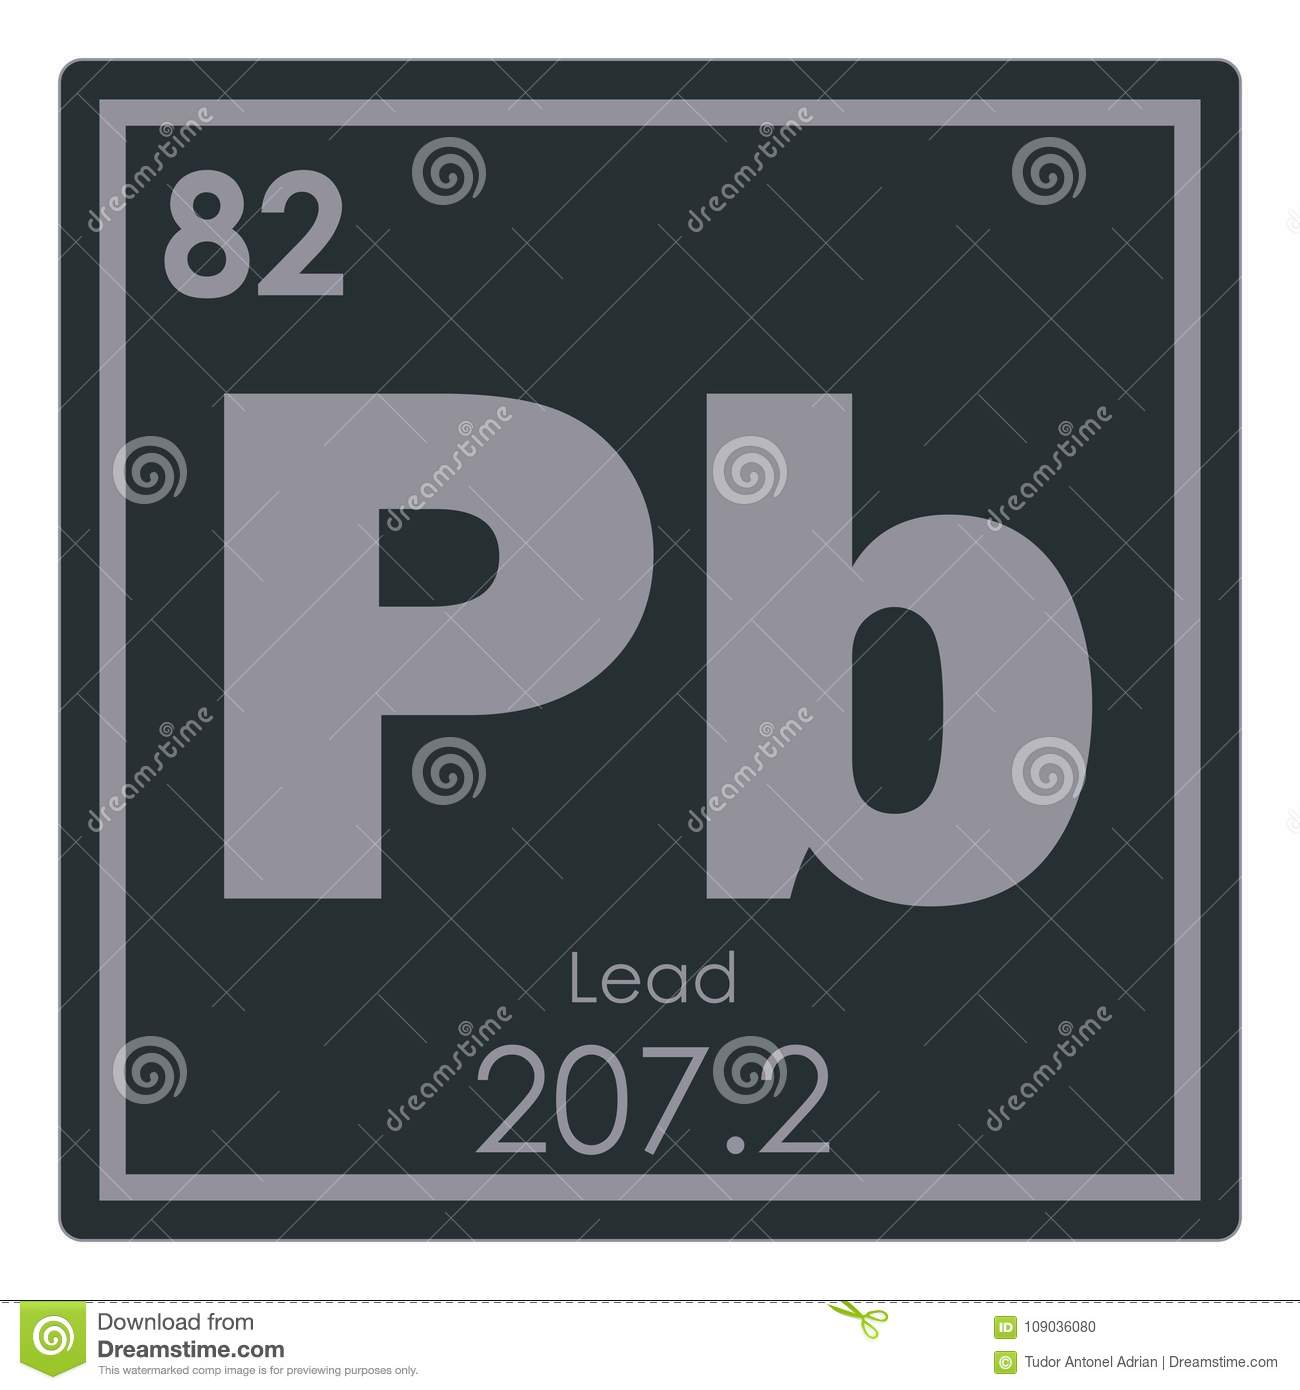 Lead chemical element stock illustration illustration of element lead chemical element periodic table science symbol urtaz Images